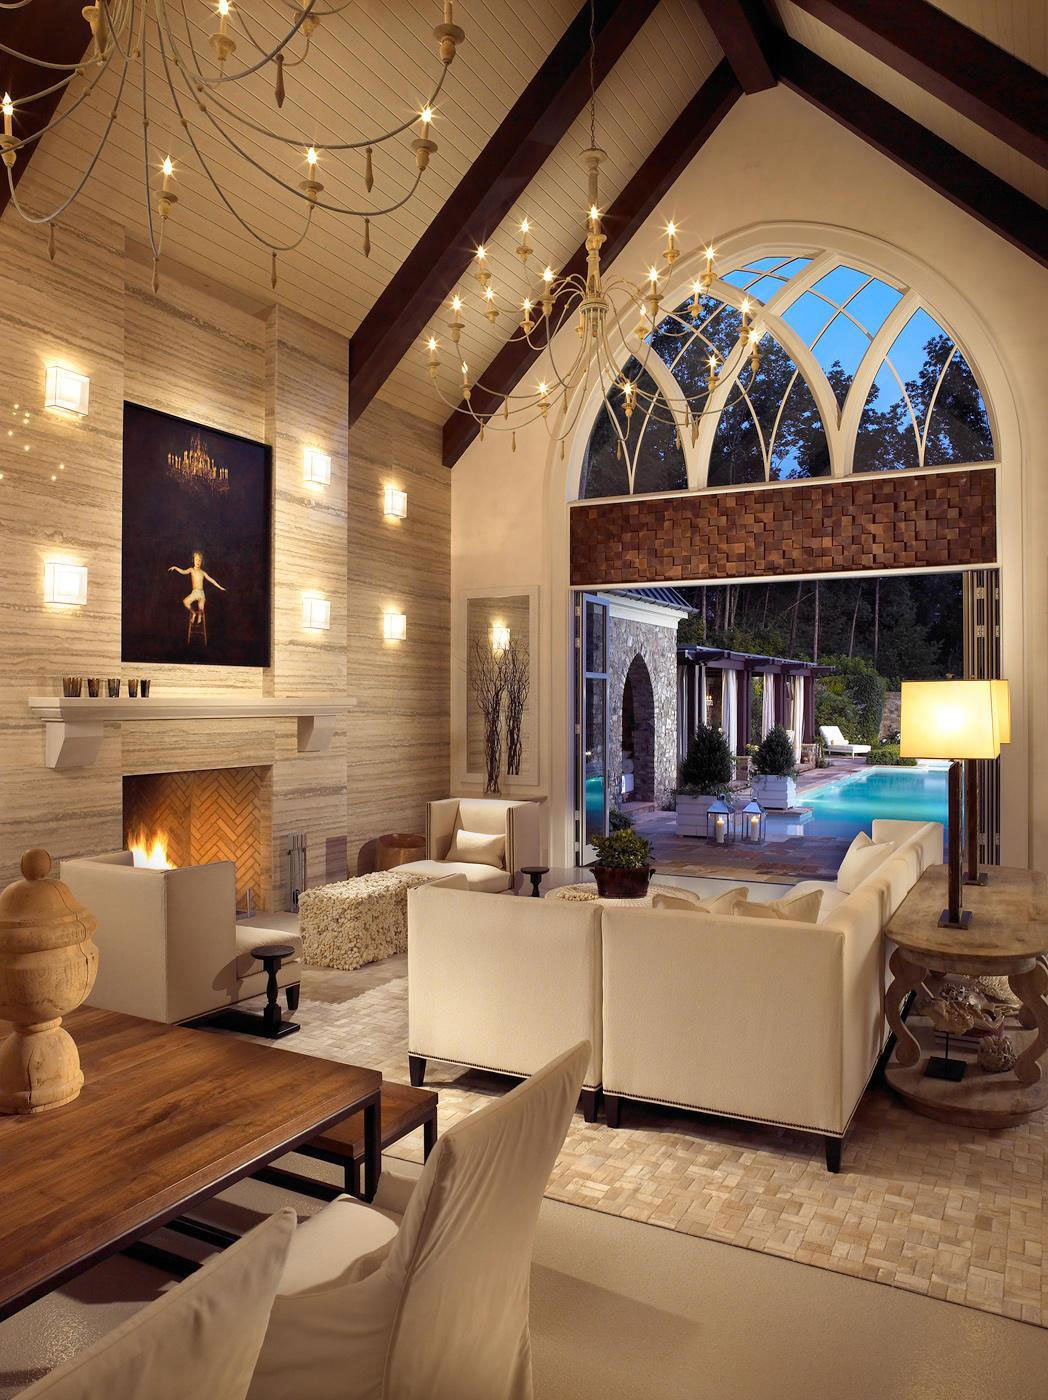 Pool-House-and-Wine-Cellar-01